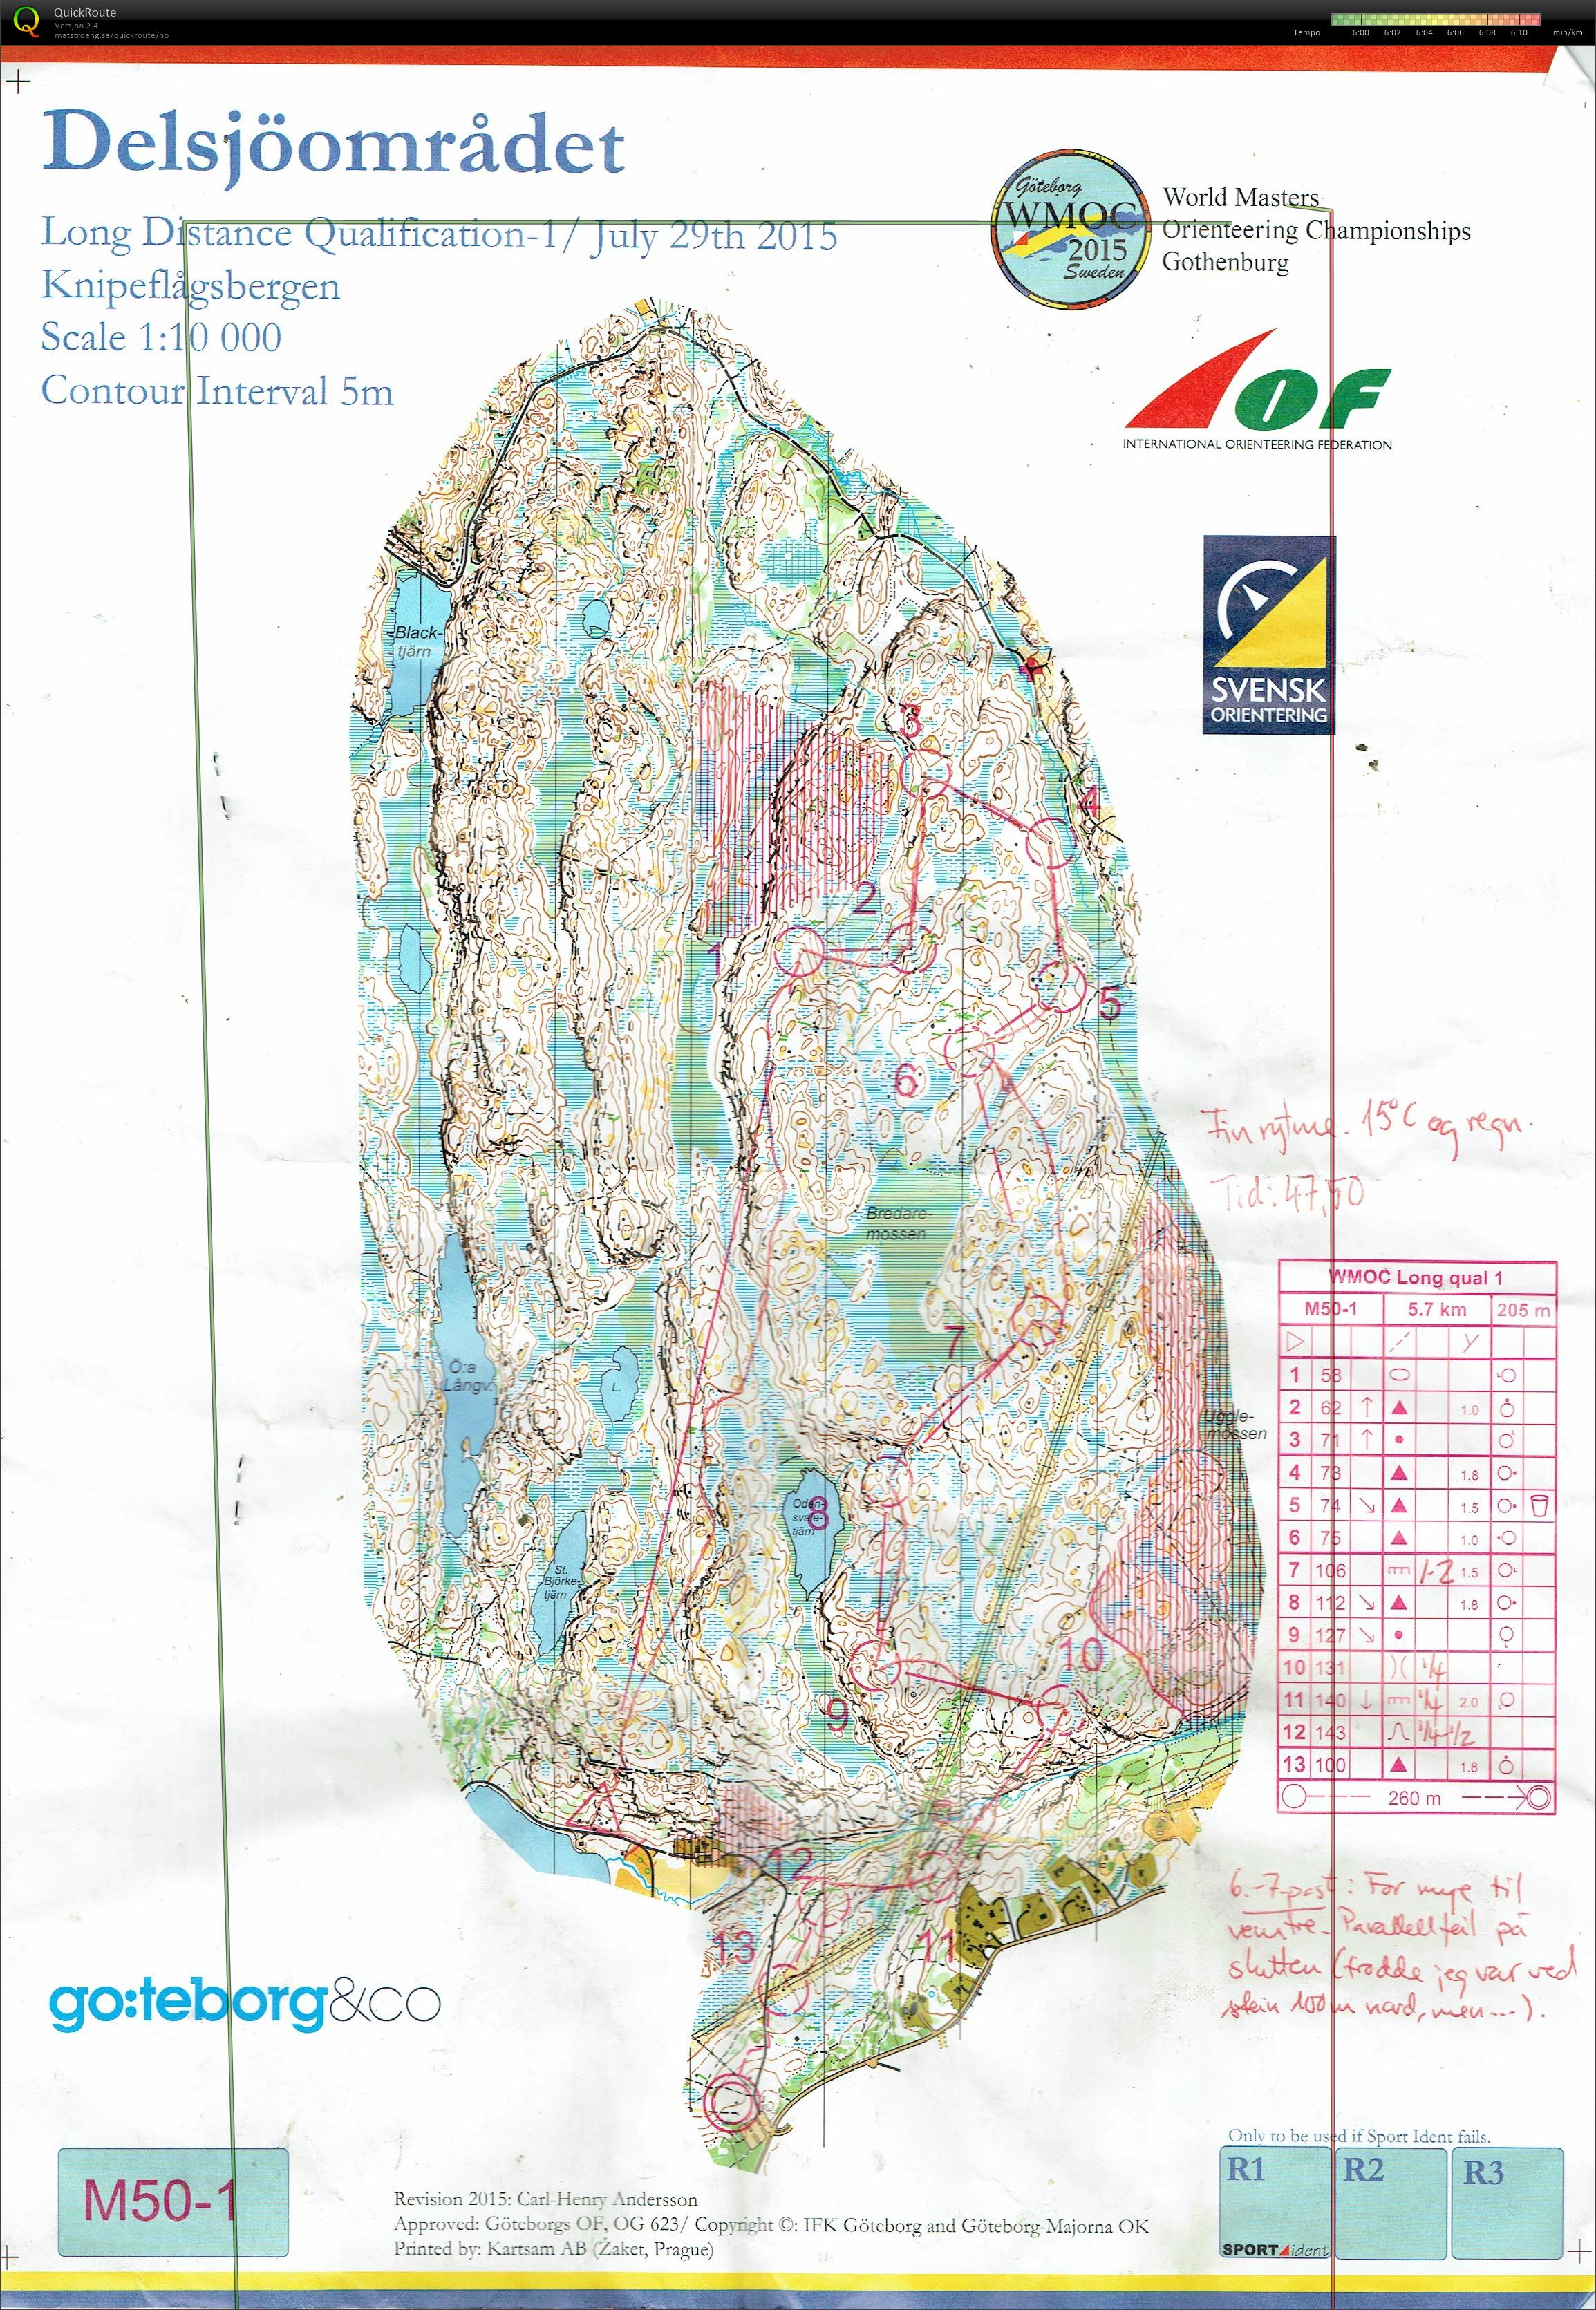 World Masters Orienteering Championships (29.07.2015)